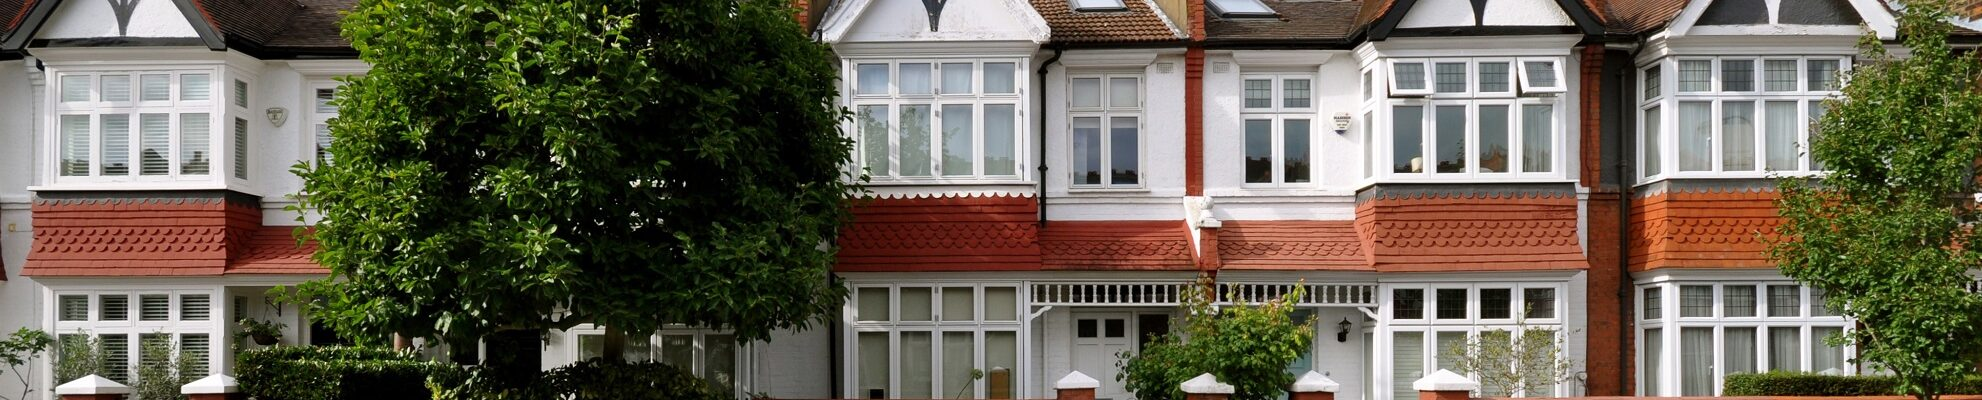 Conveyancing & Property Law Services in Lewes